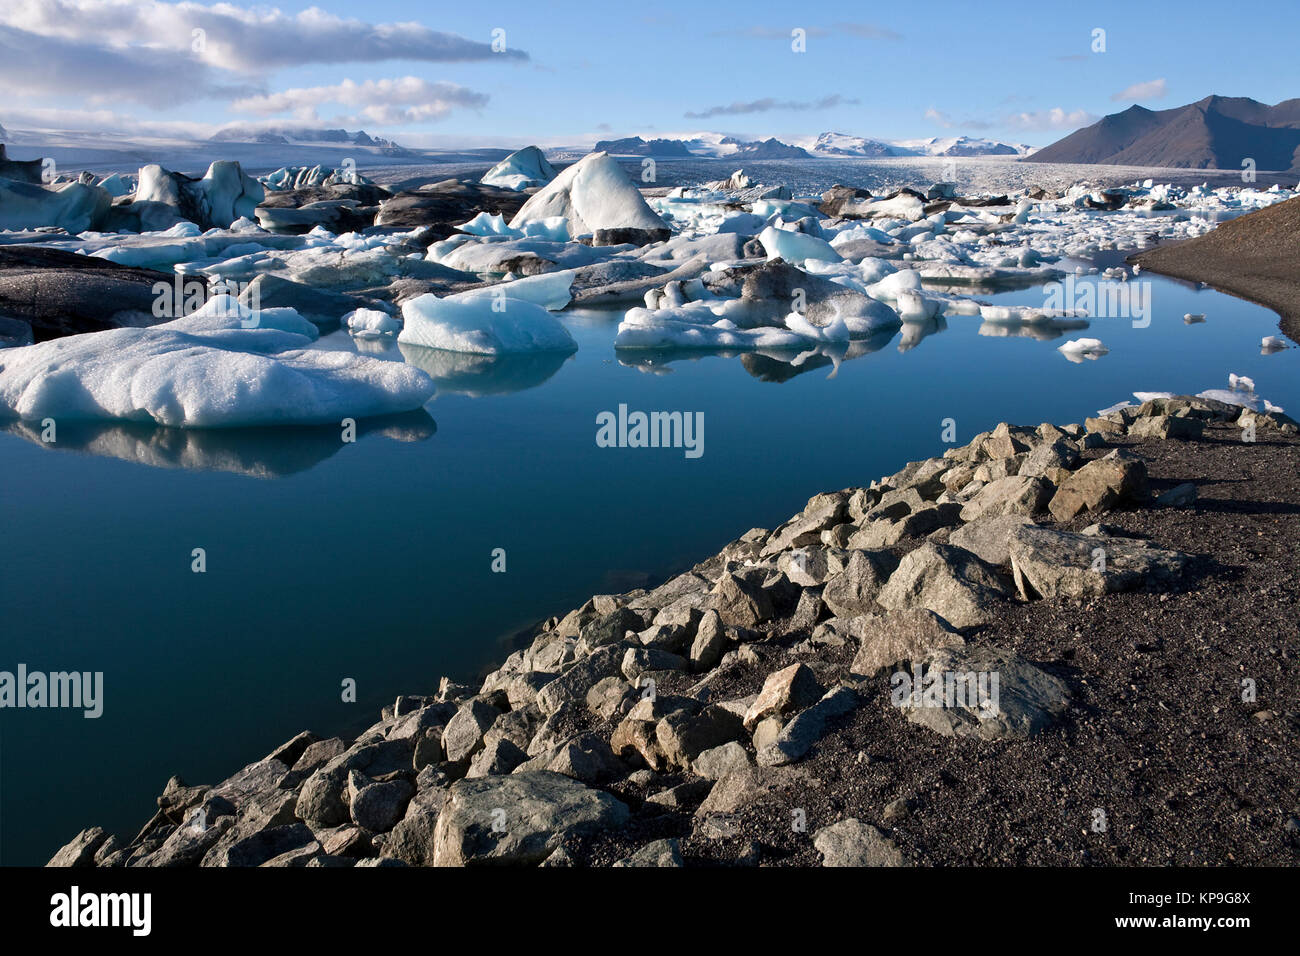 Icebergs slowly melting in Jokulsarlon glacier lagoon on the south coast of Iceland. - Stock Image